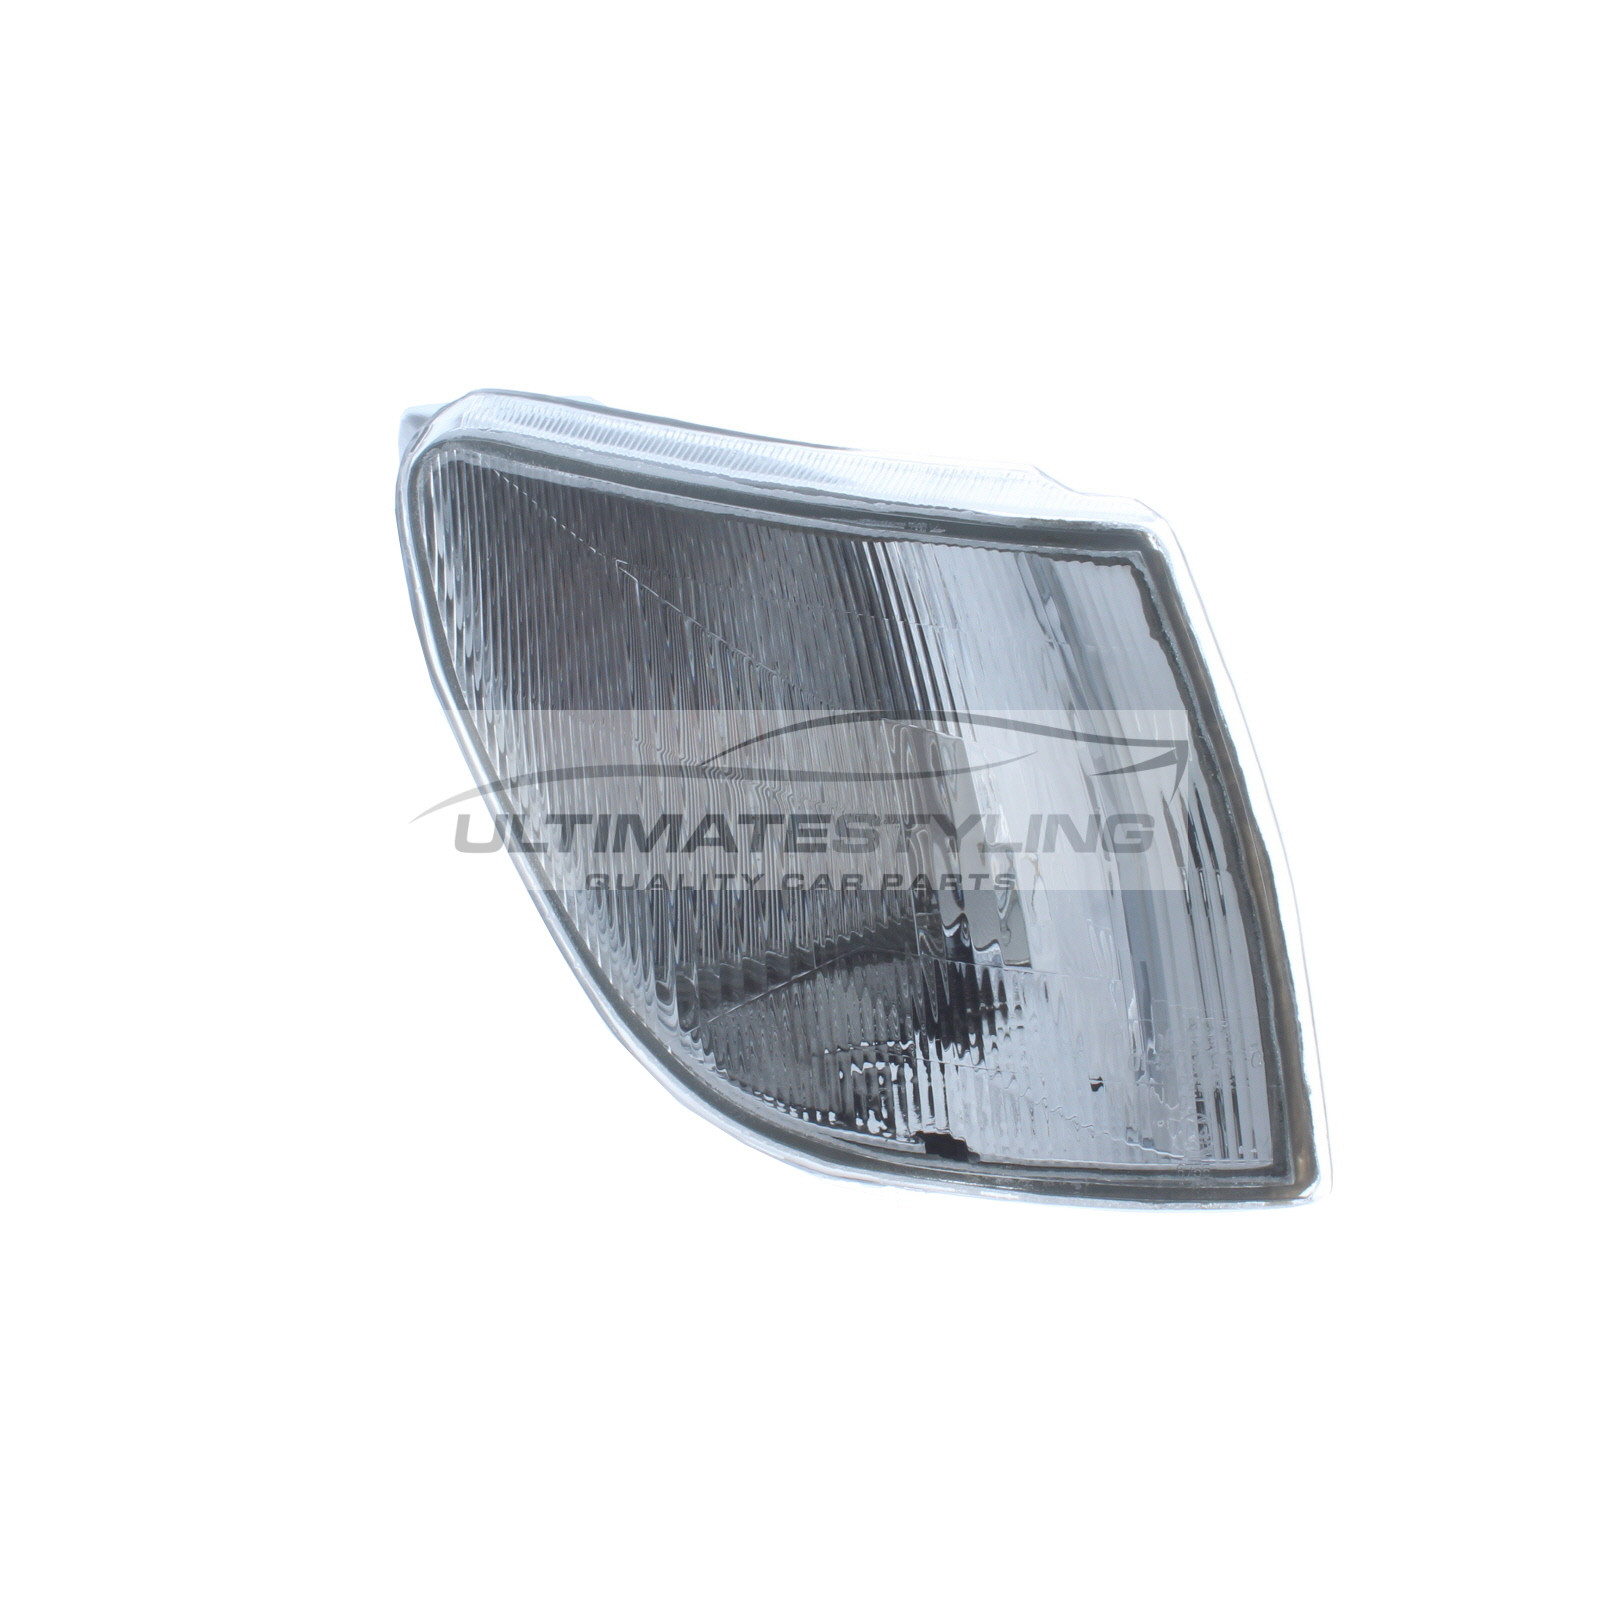 1993-2001 FRONT INDICATOR CLEAR DRIVERS SIDE RH